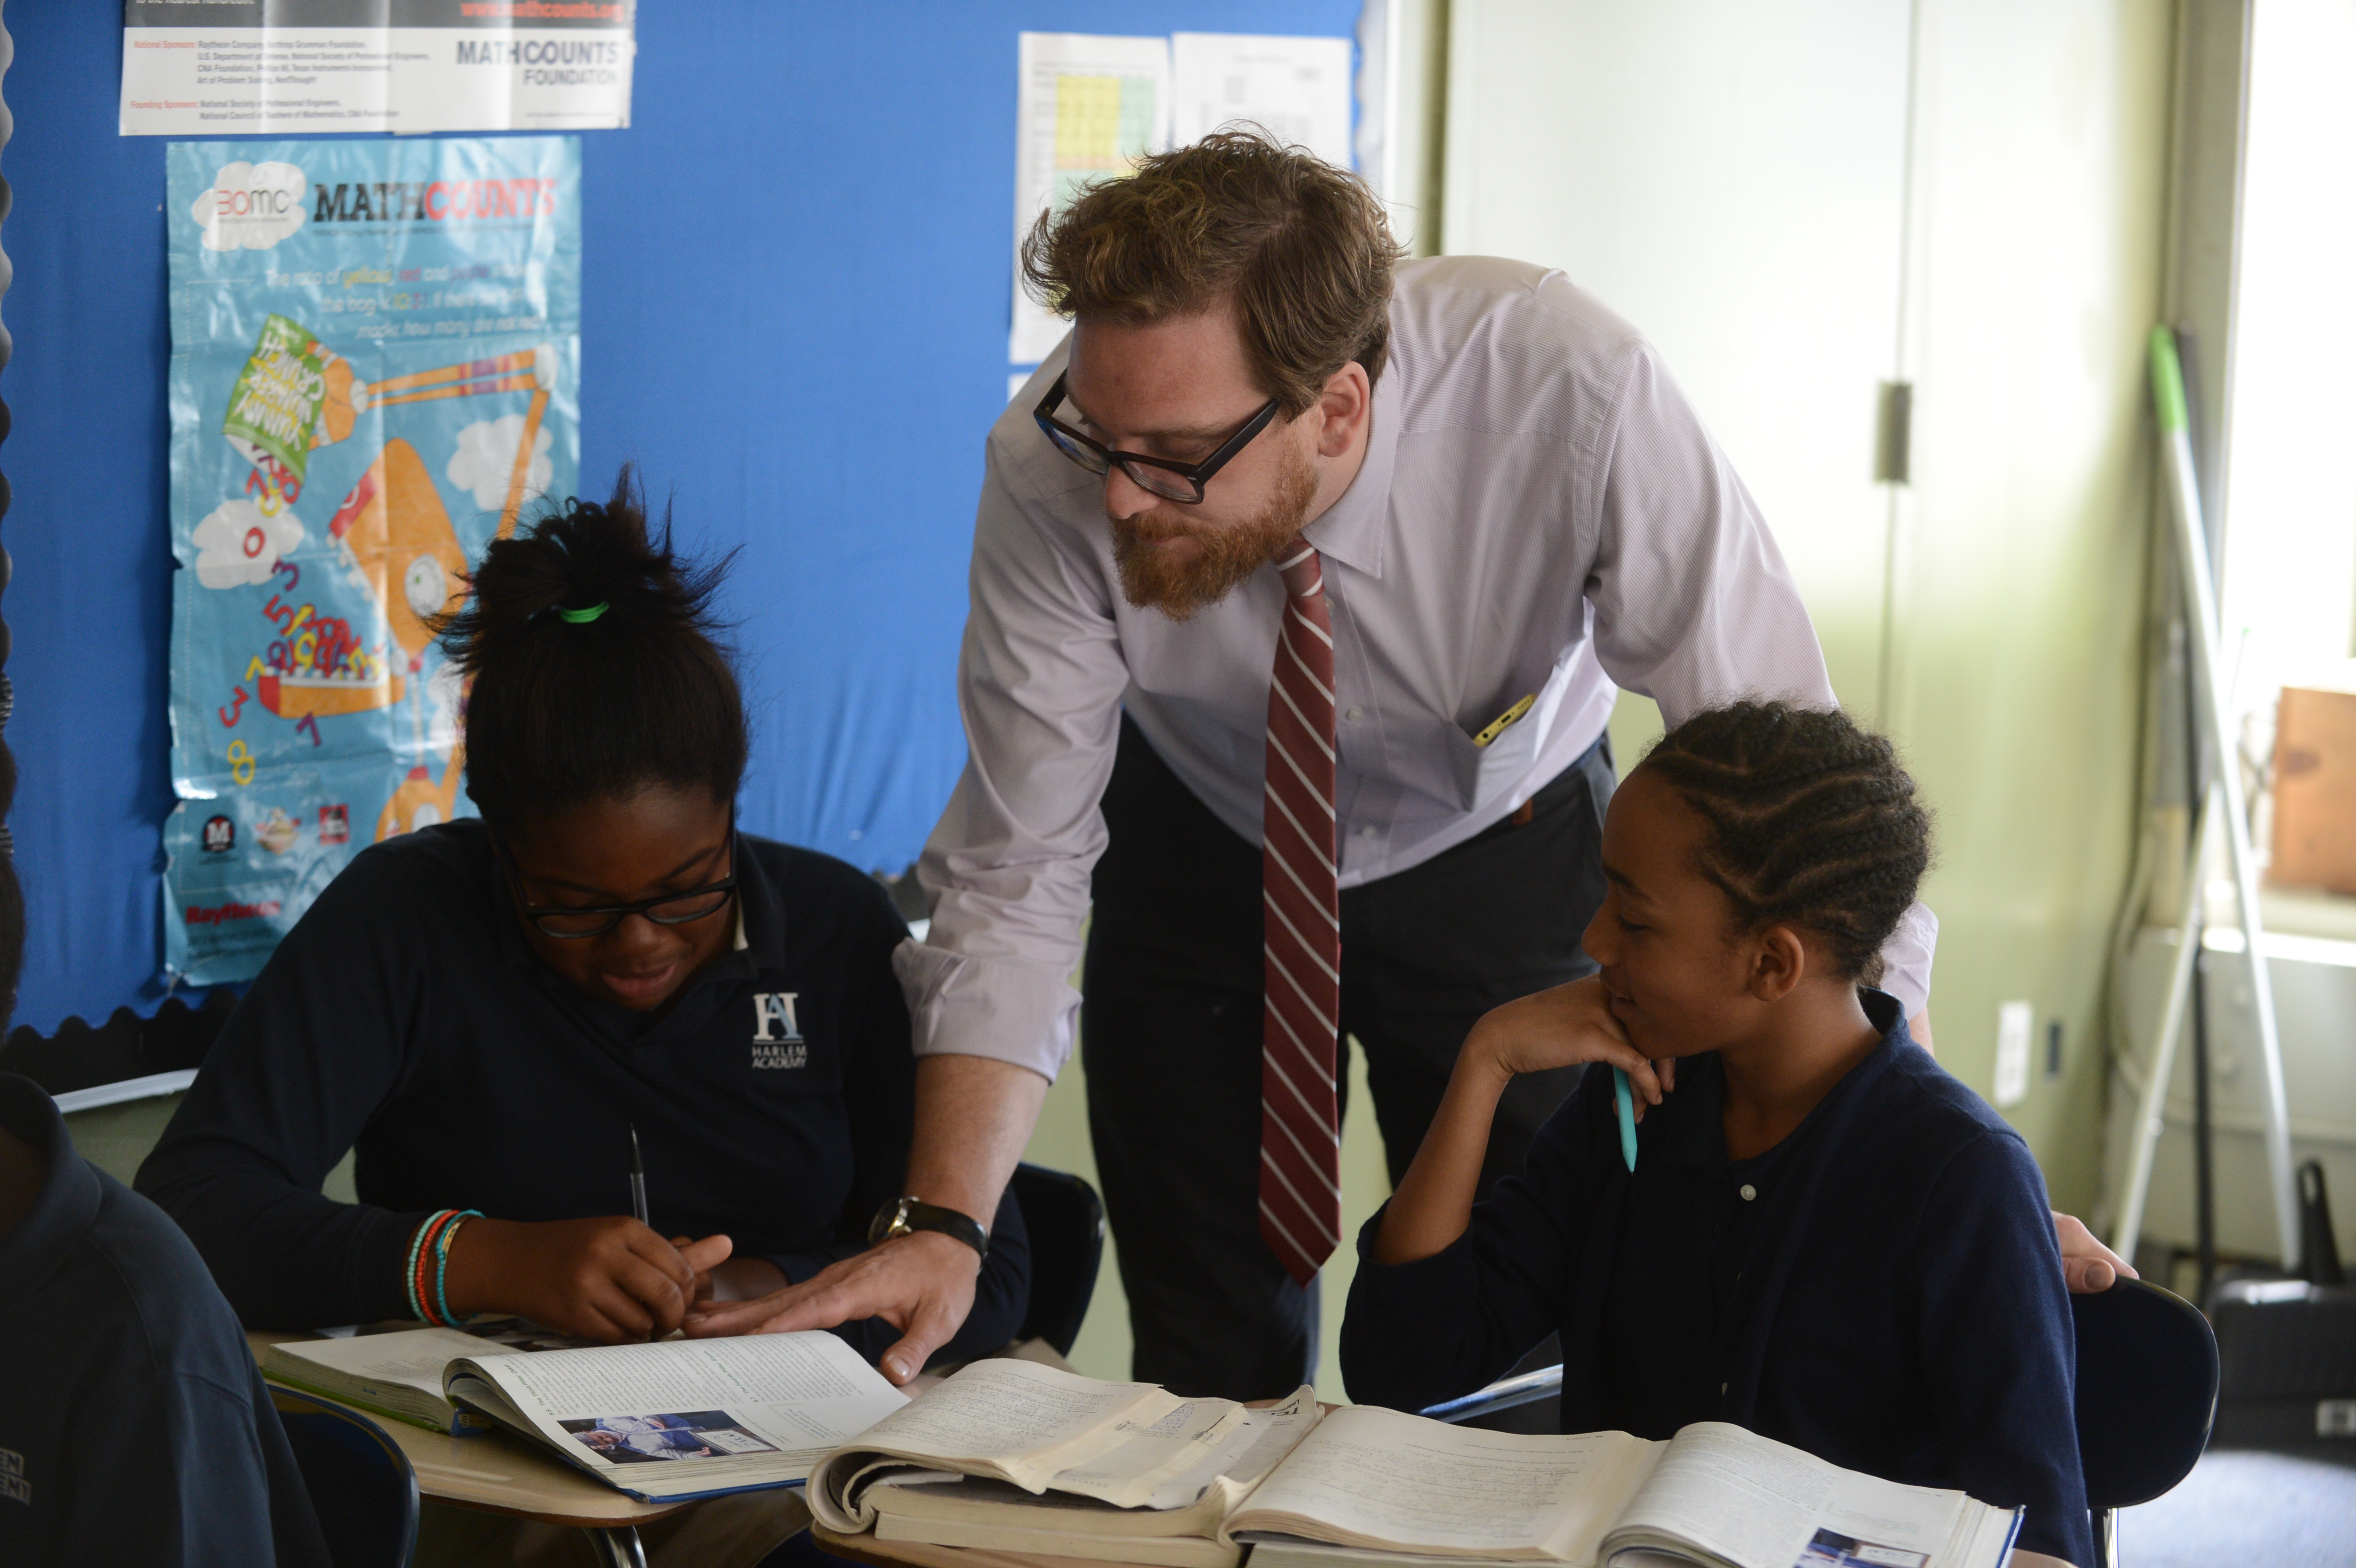 Sean Robertson, 2016 New York History Teacher of the Year, with his students at Harlem Academy Middle School